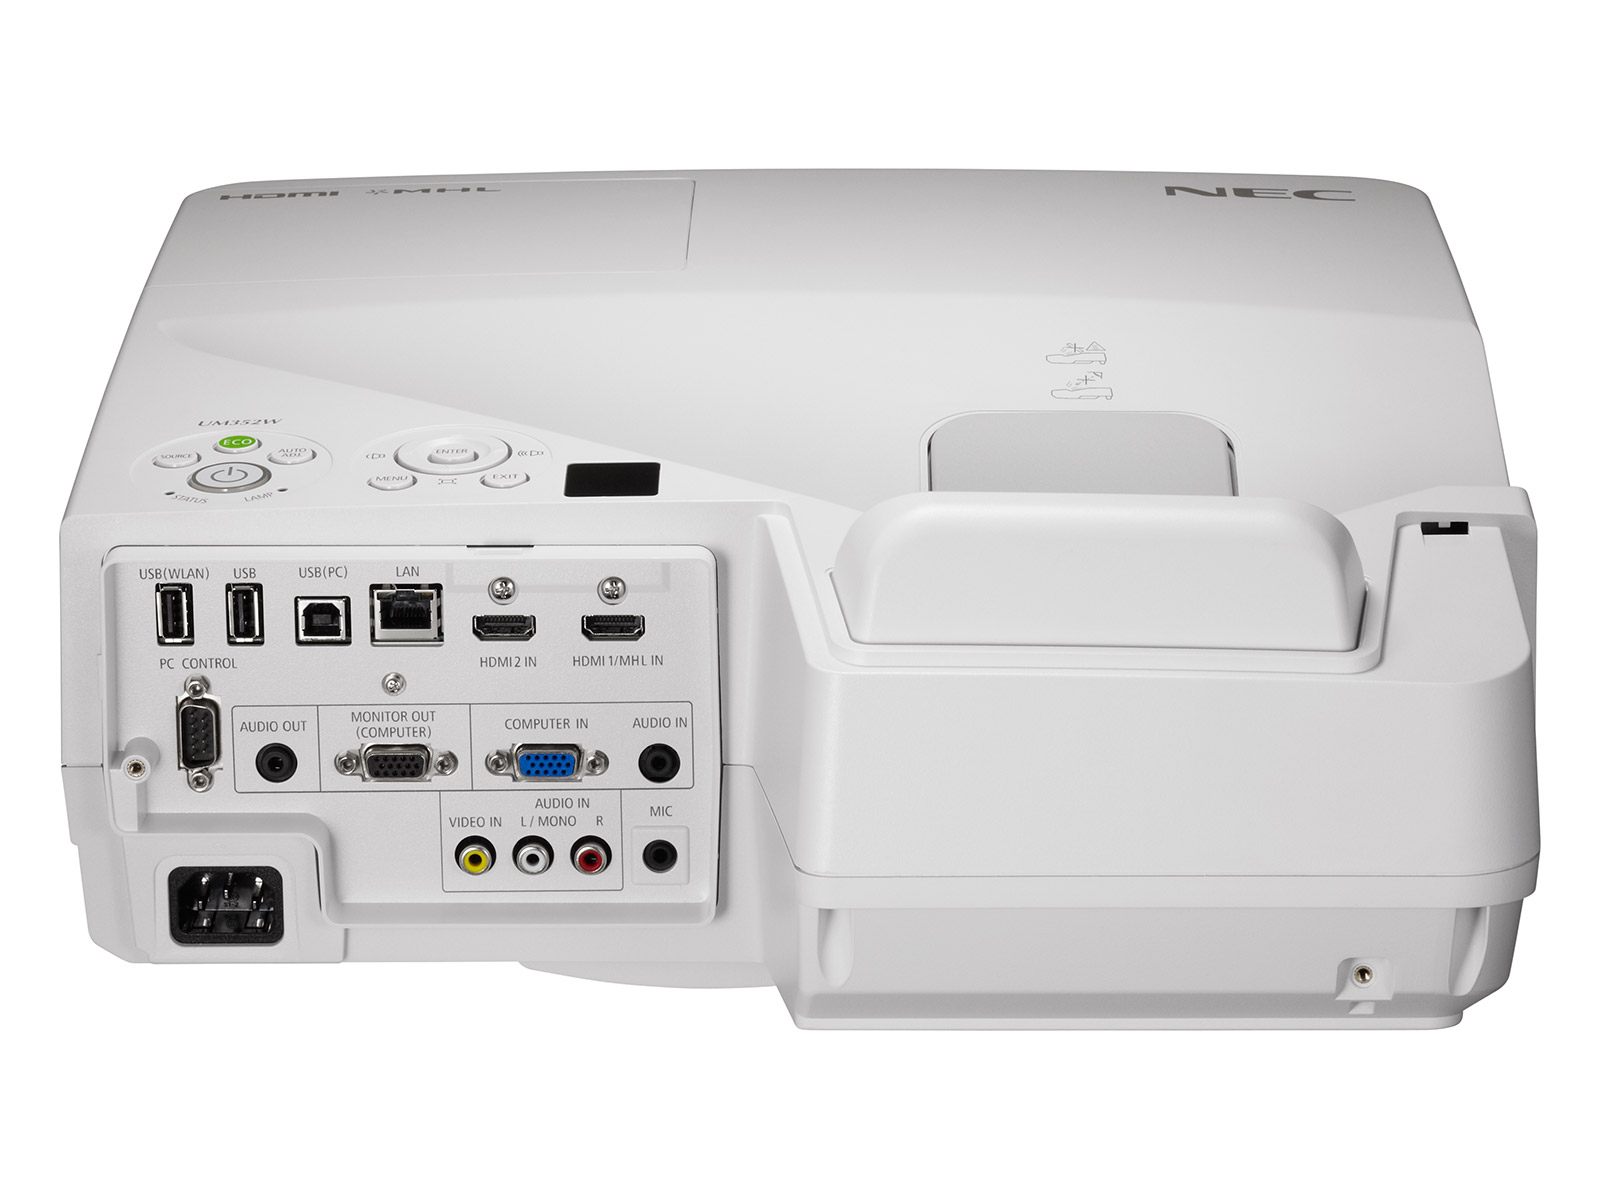 Videoproiector Profesional Ultra Short Throw UM352Wi Multi Touch, 3500 Lumeni, 1280x800